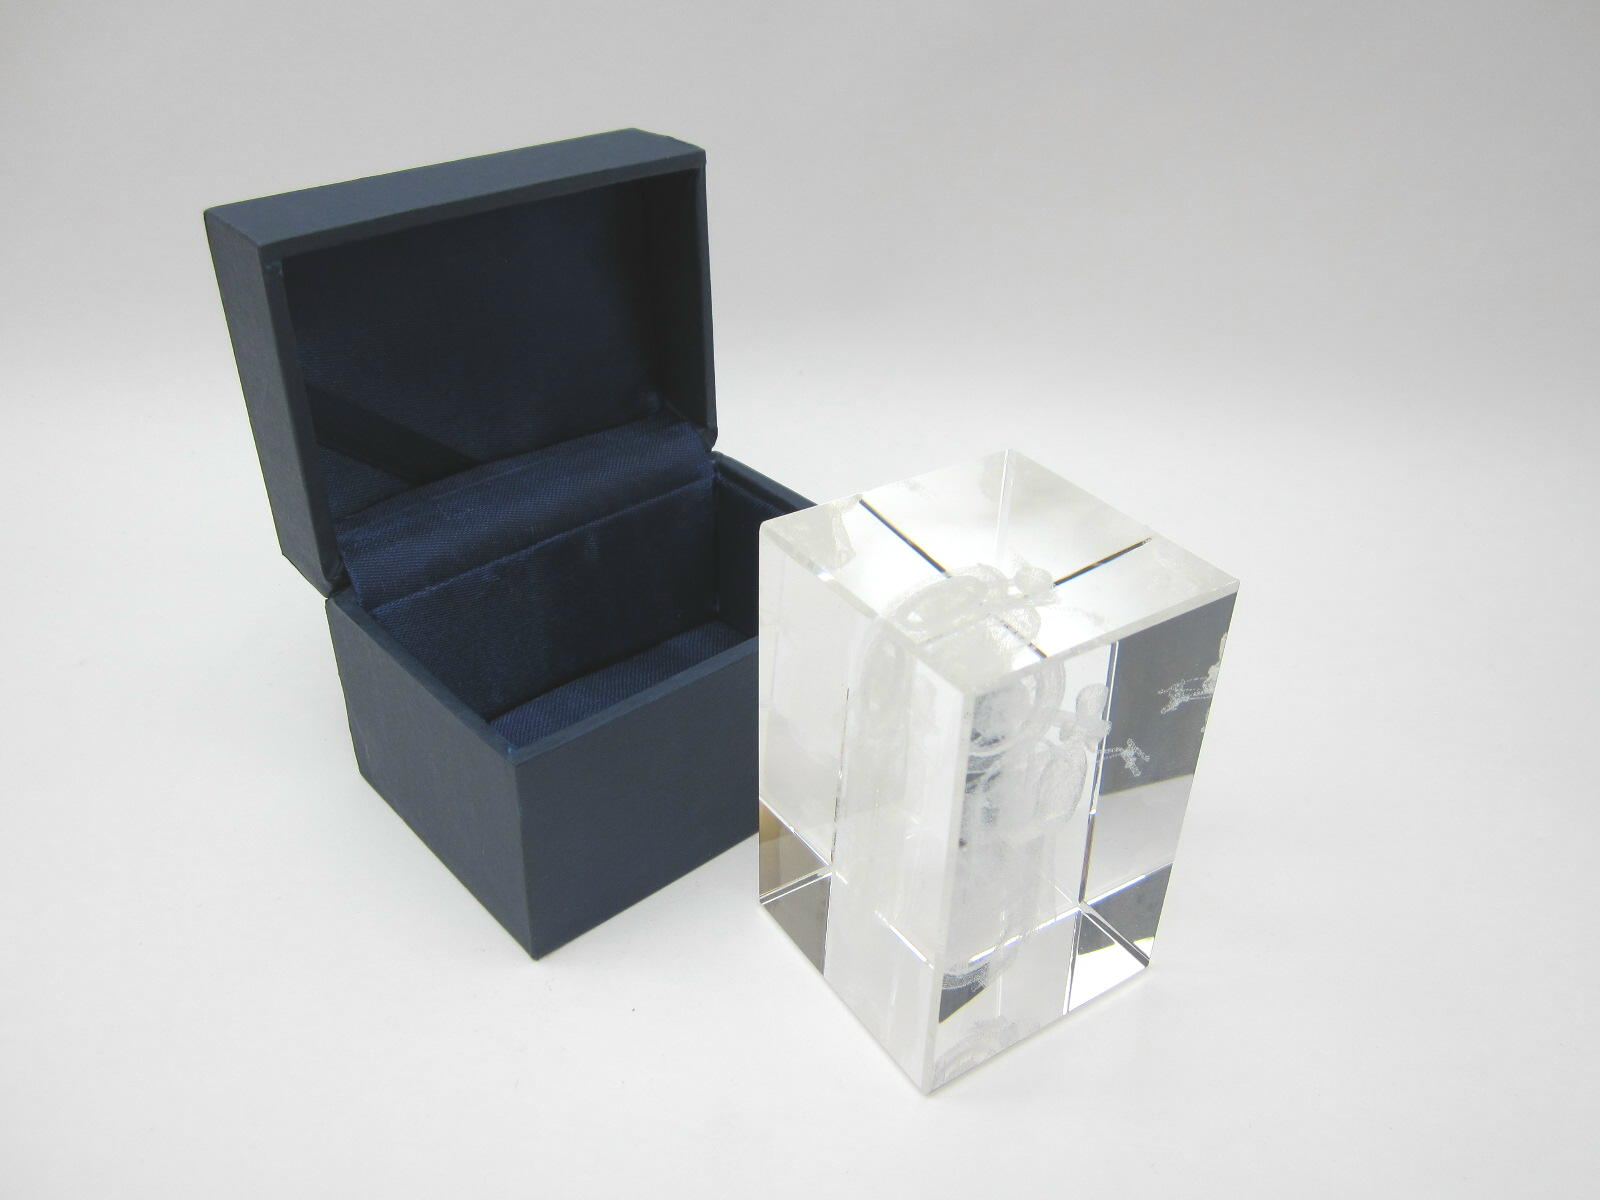 3D V700 glass block